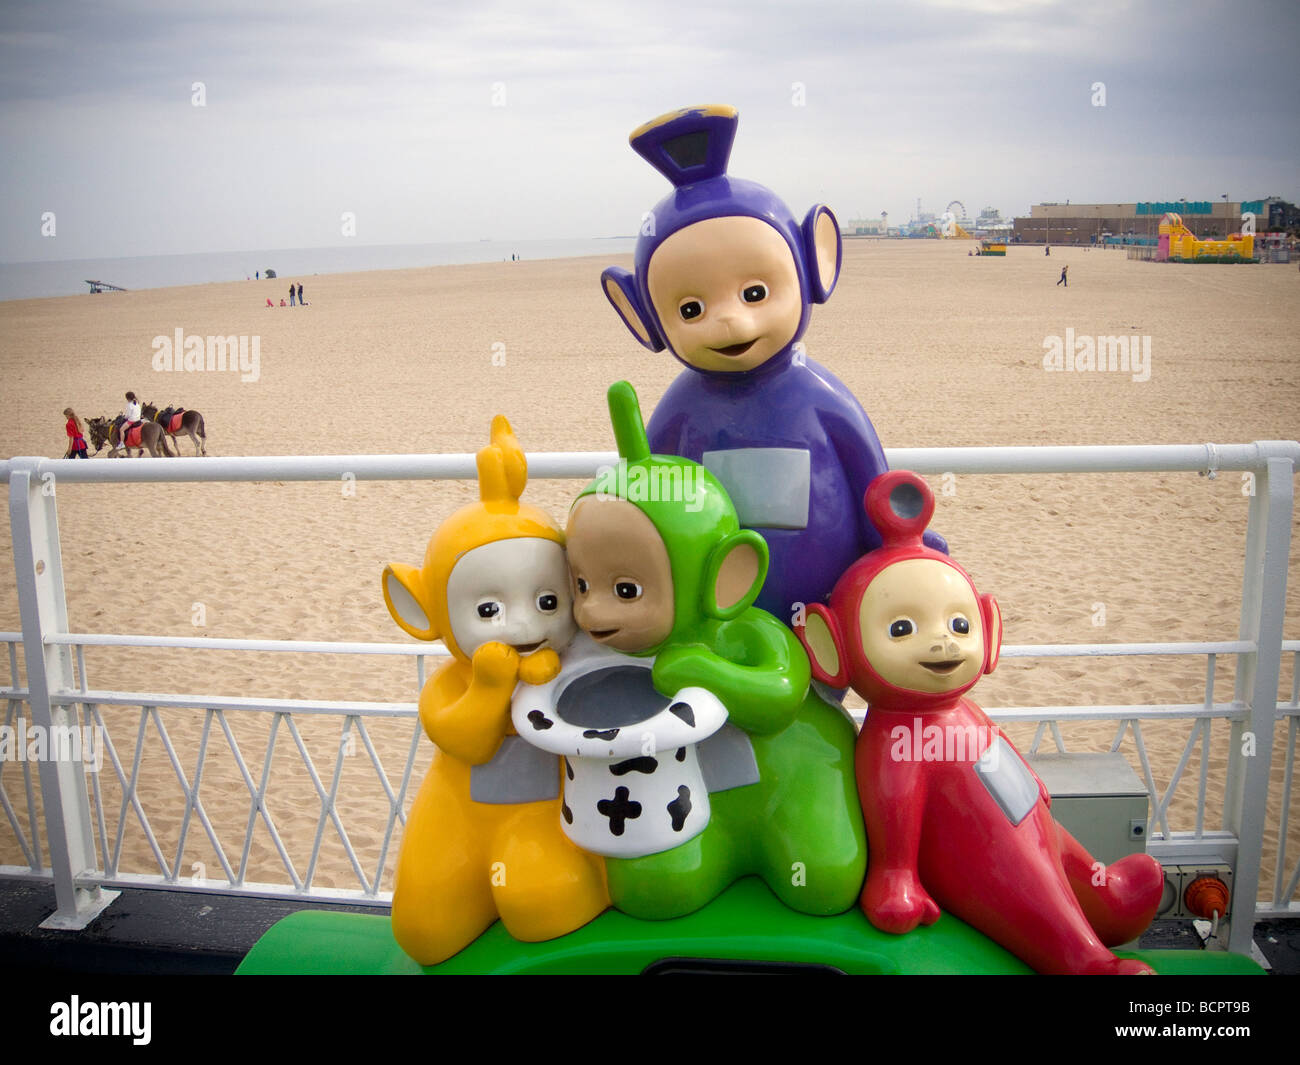 Tele-Tubbies amusement machine at the sea-side. Great Yarmouth Pier. UK - Stock Image